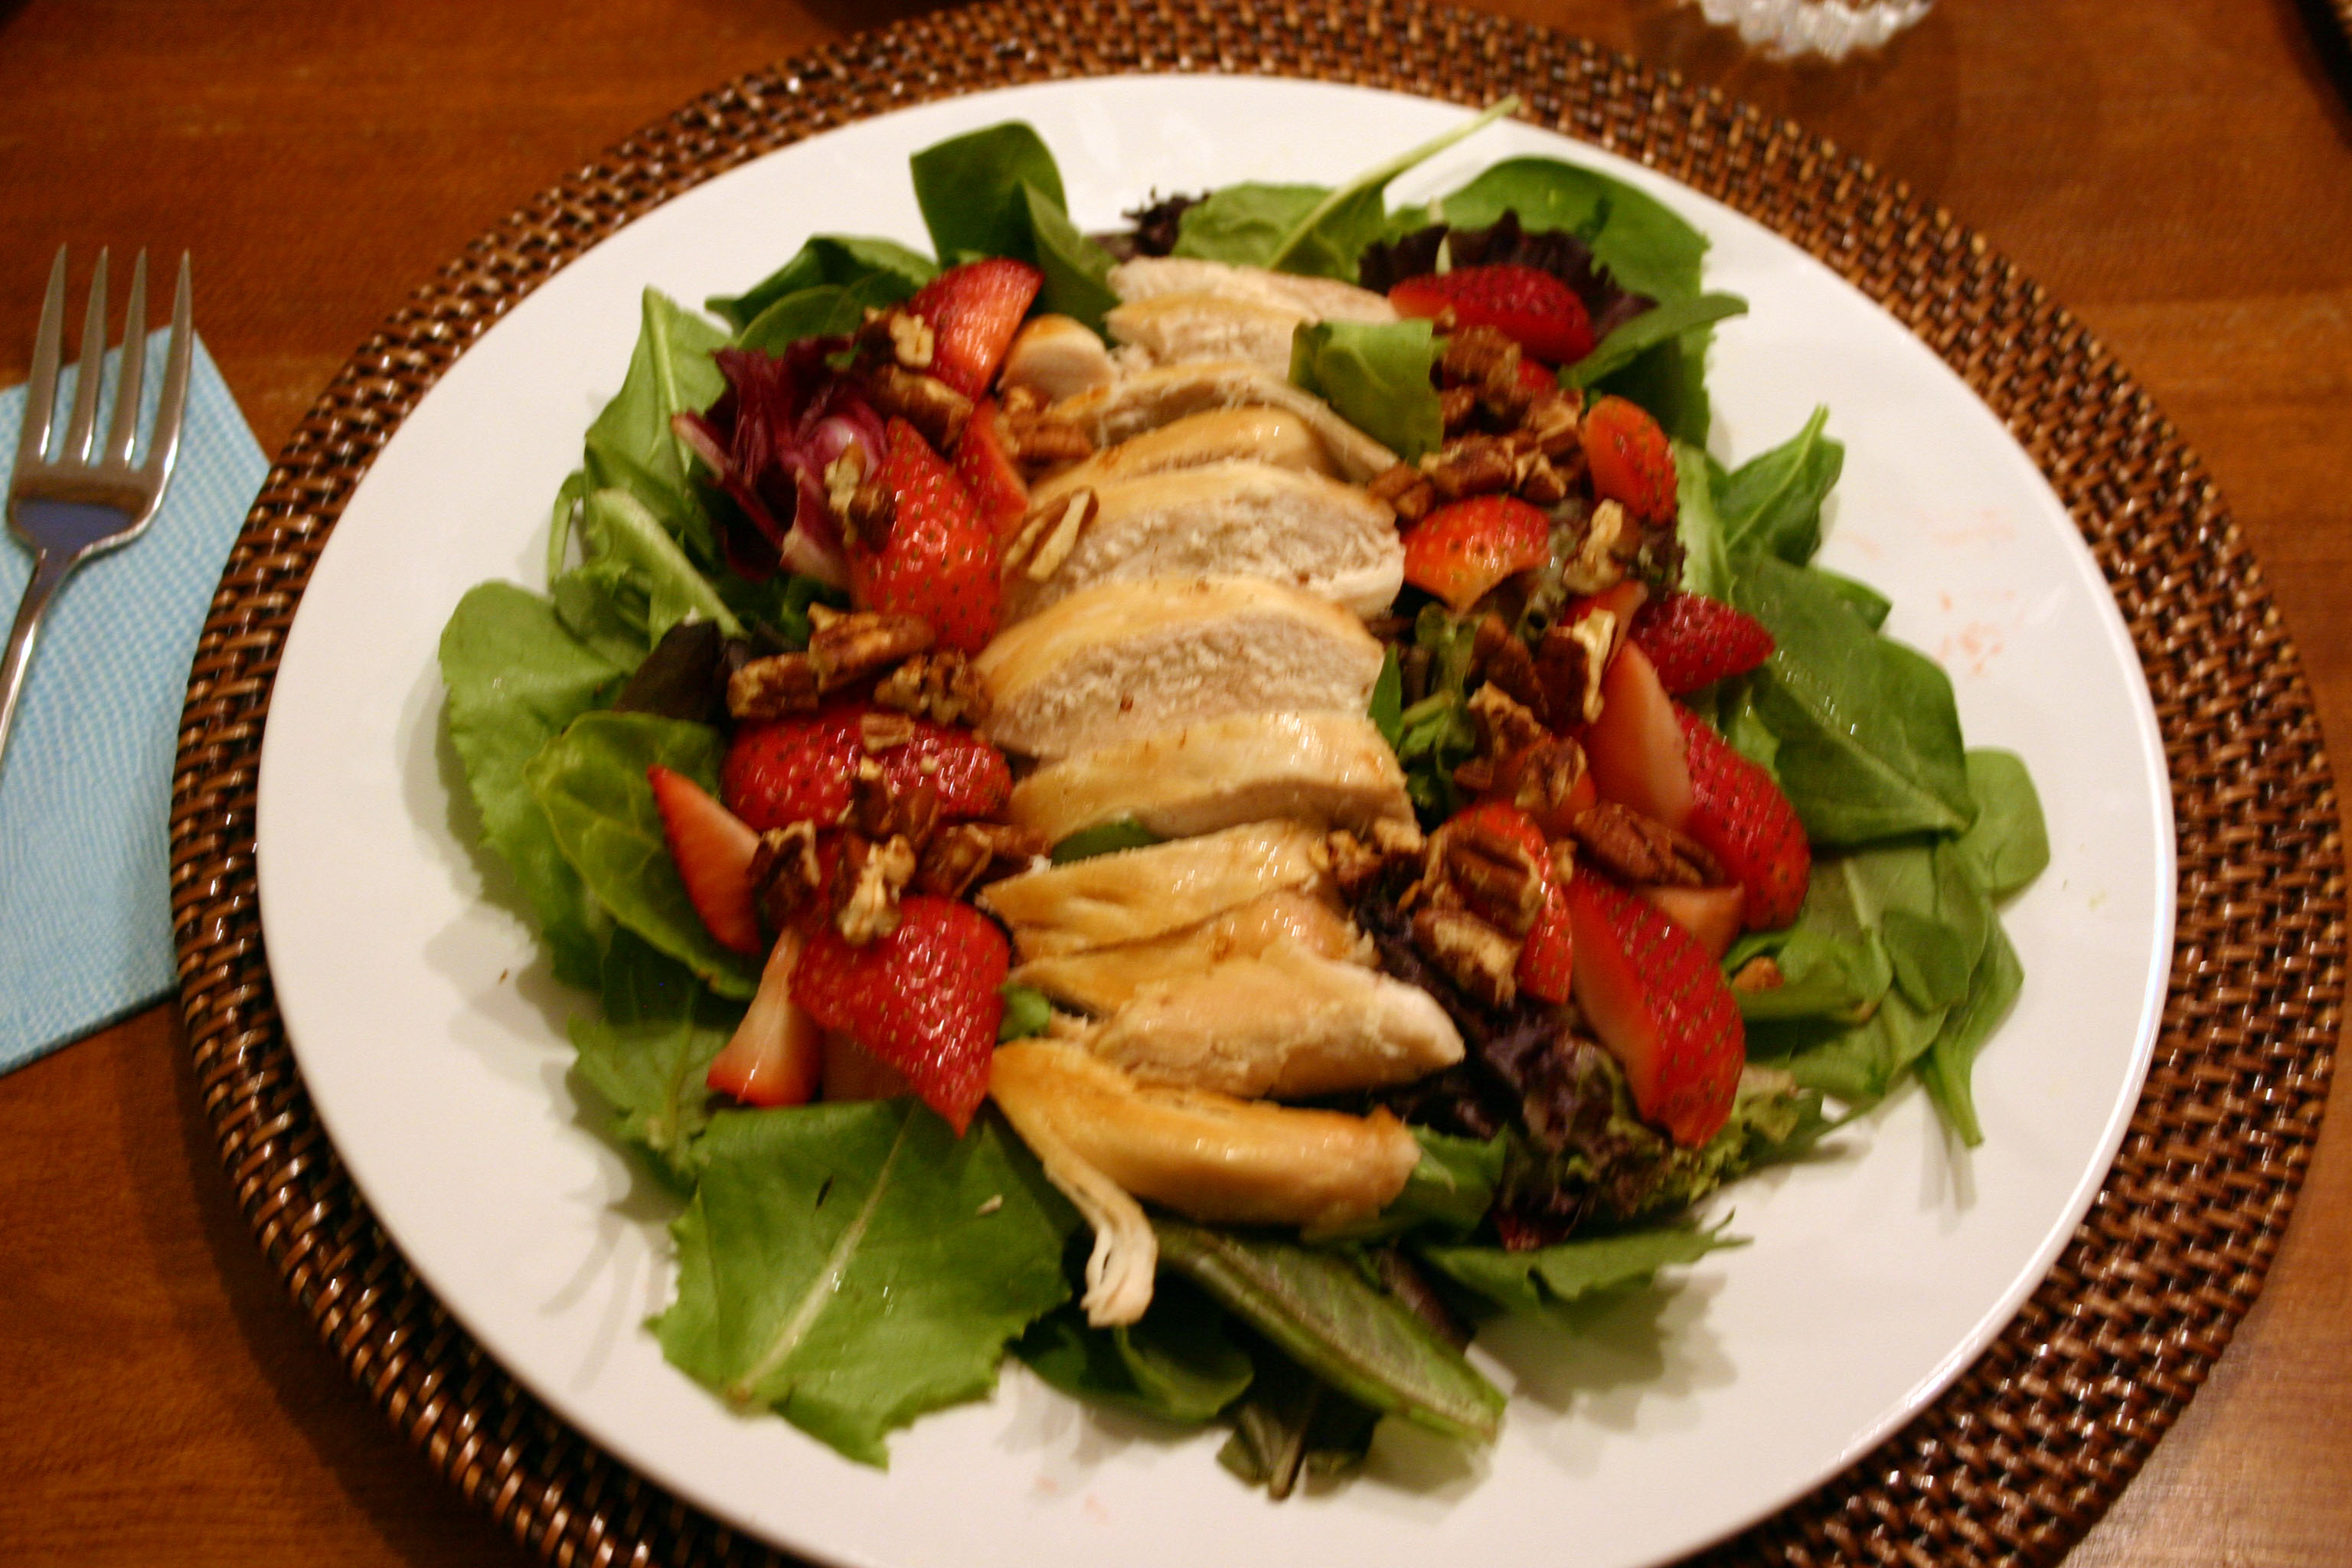 This strawberry spinach salad recipe is very simple, yet tastes so ...